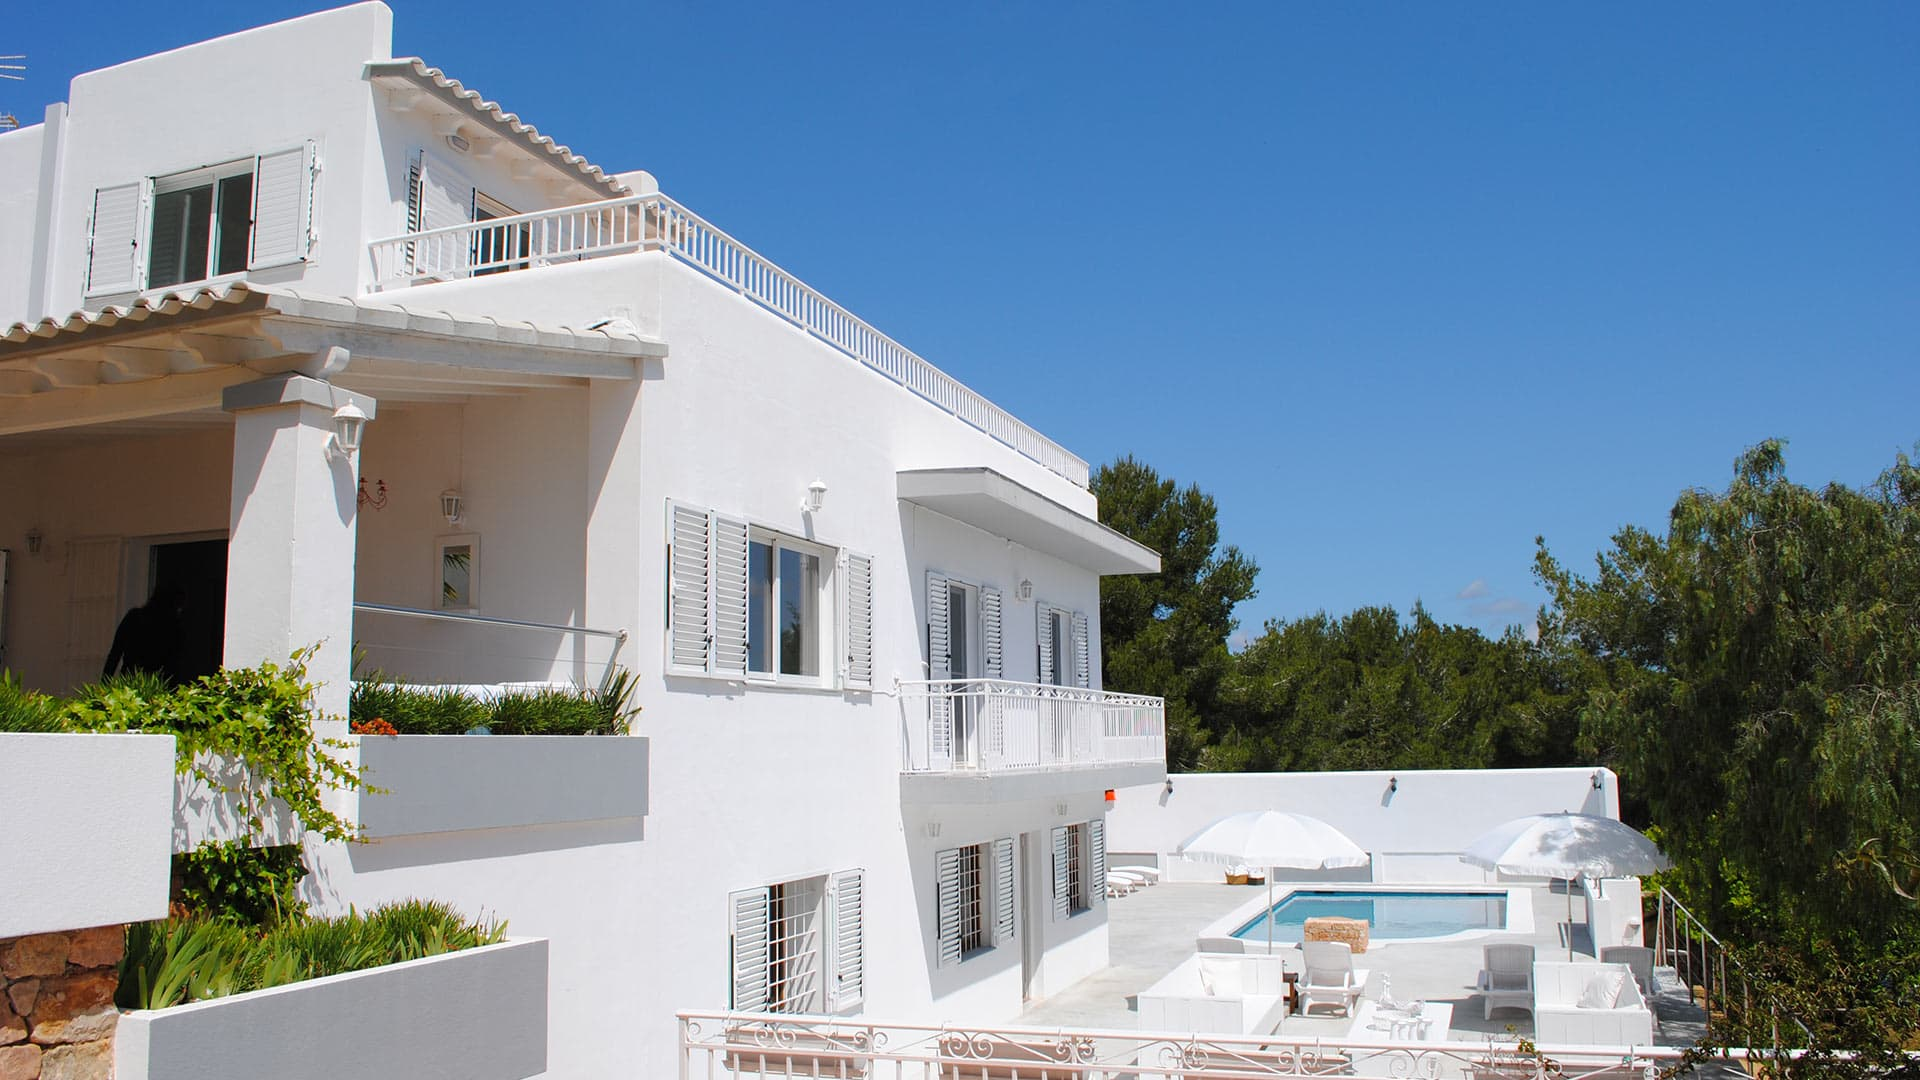 Villa Villa 720, Location à Ibiza